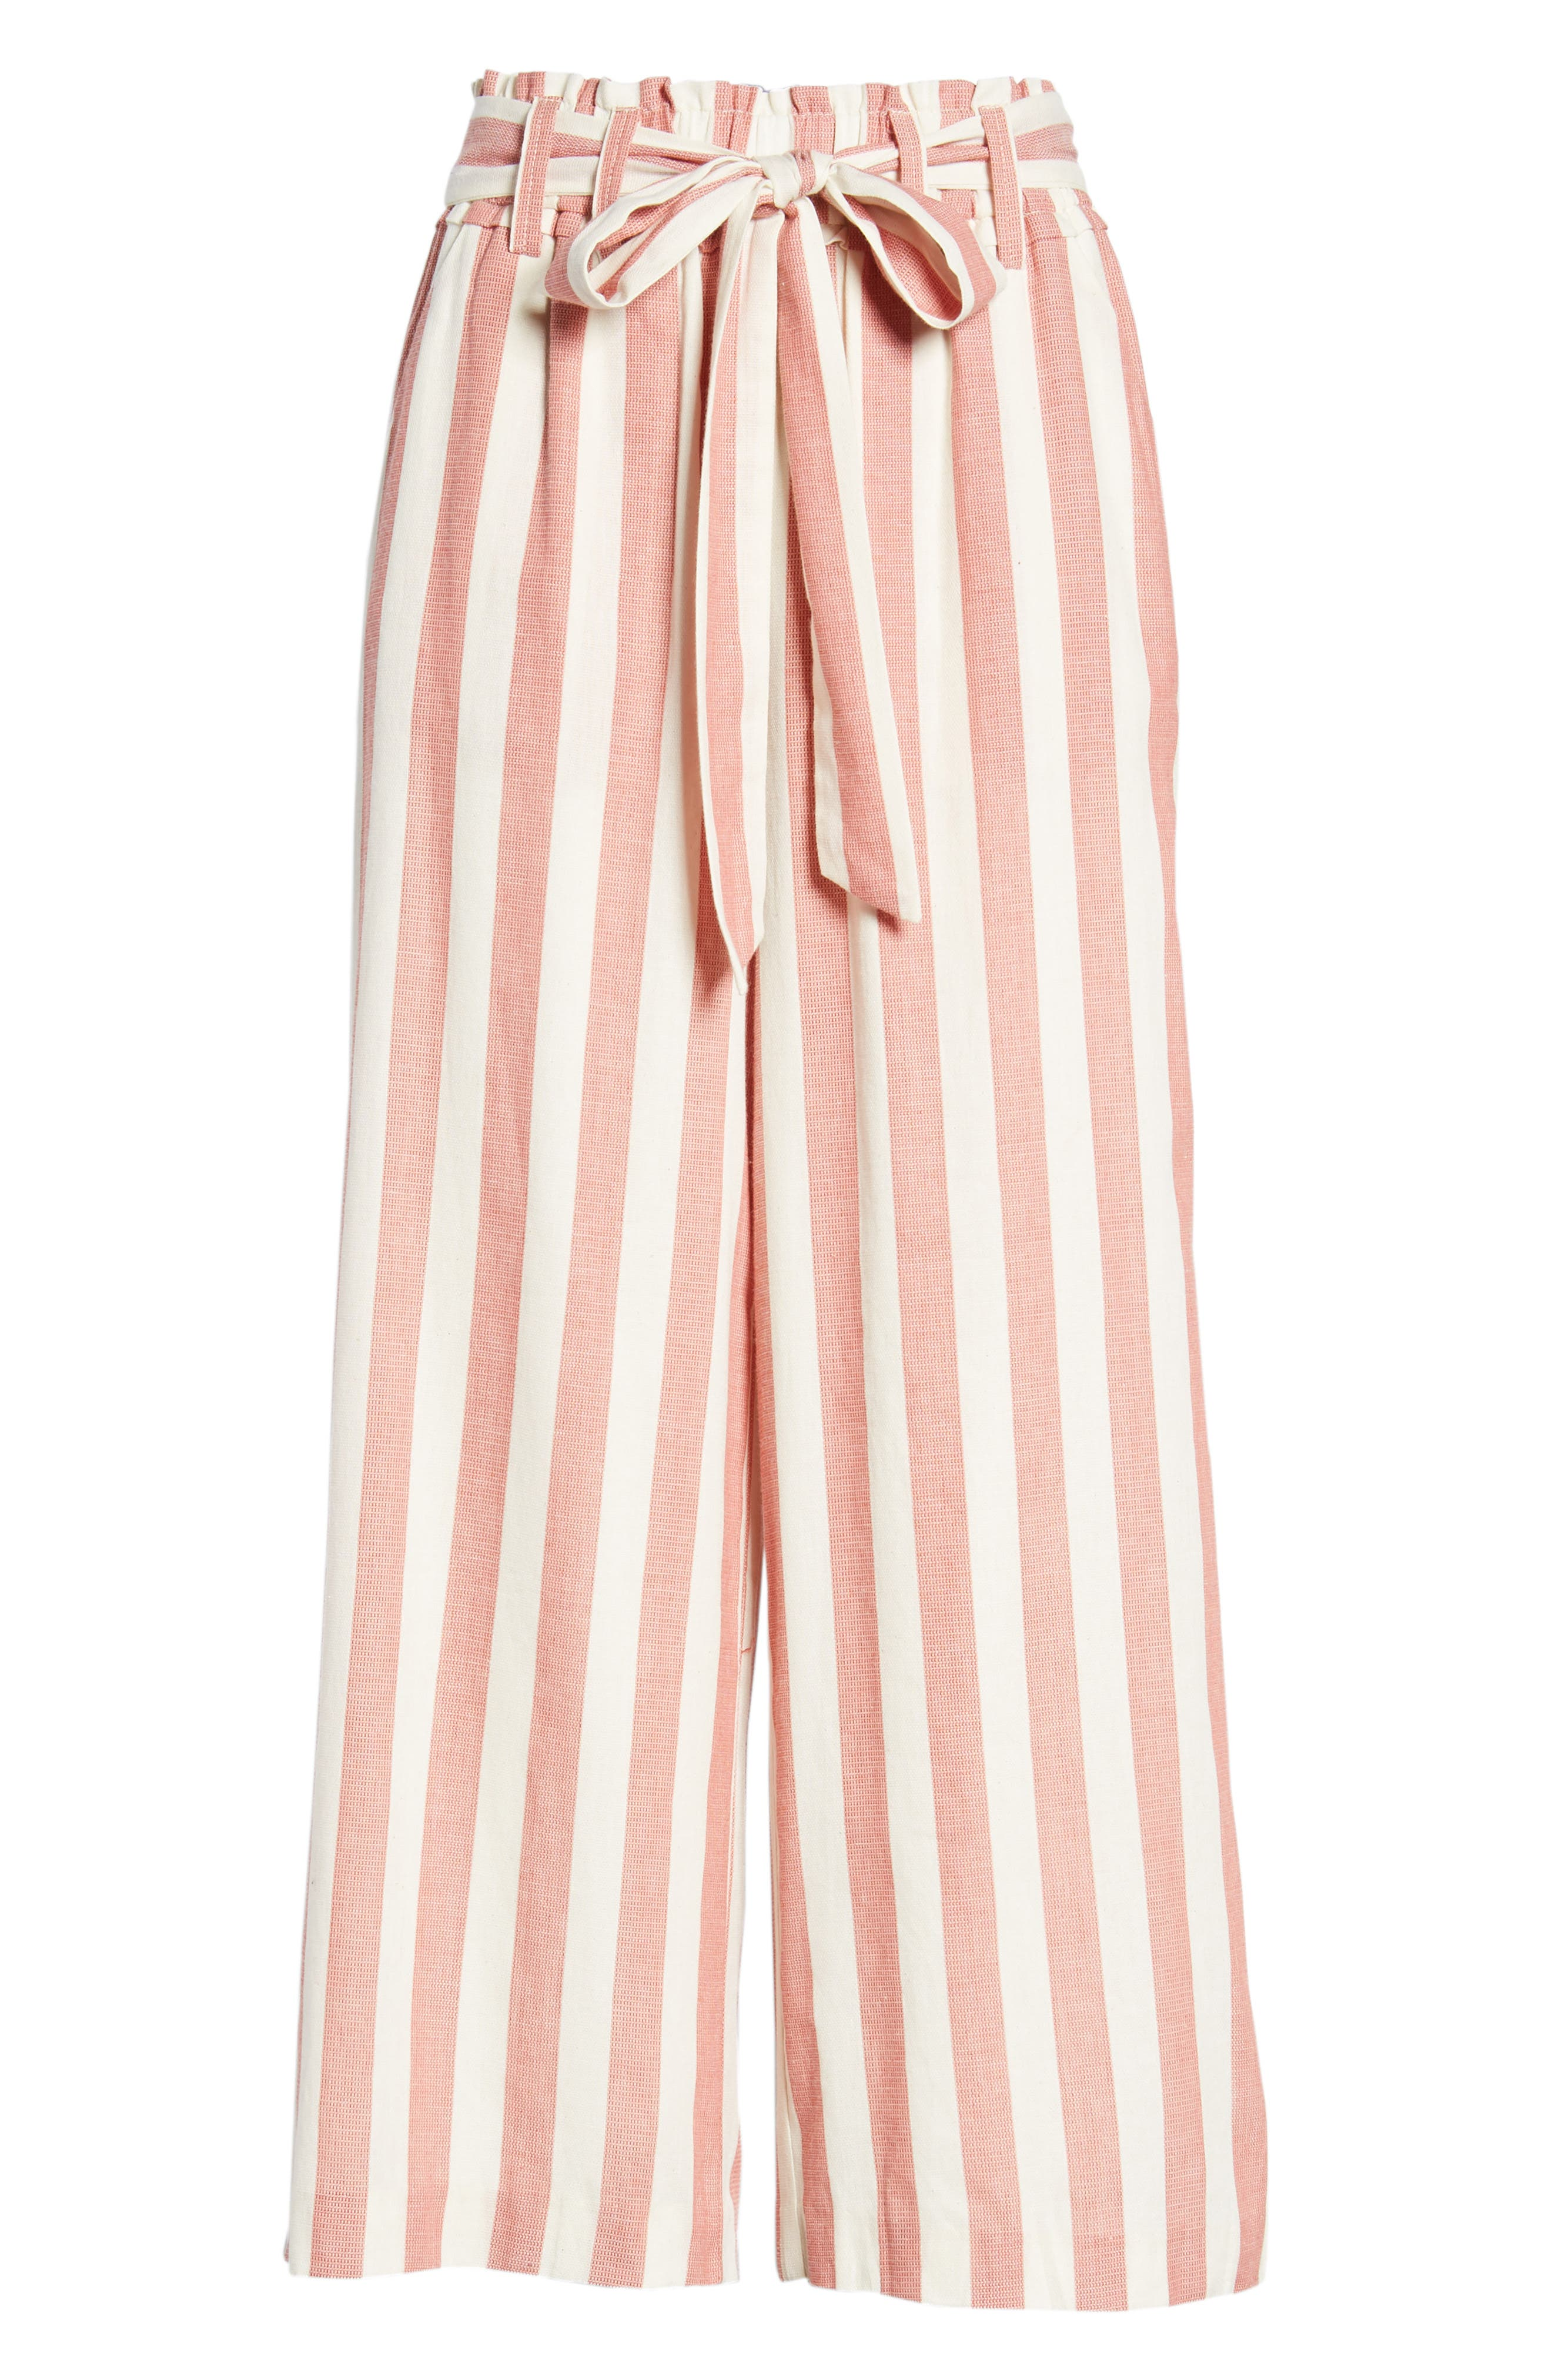 Stripe Paperbag Waist Pants,                             Alternate thumbnail 7, color,                             Red Stripe